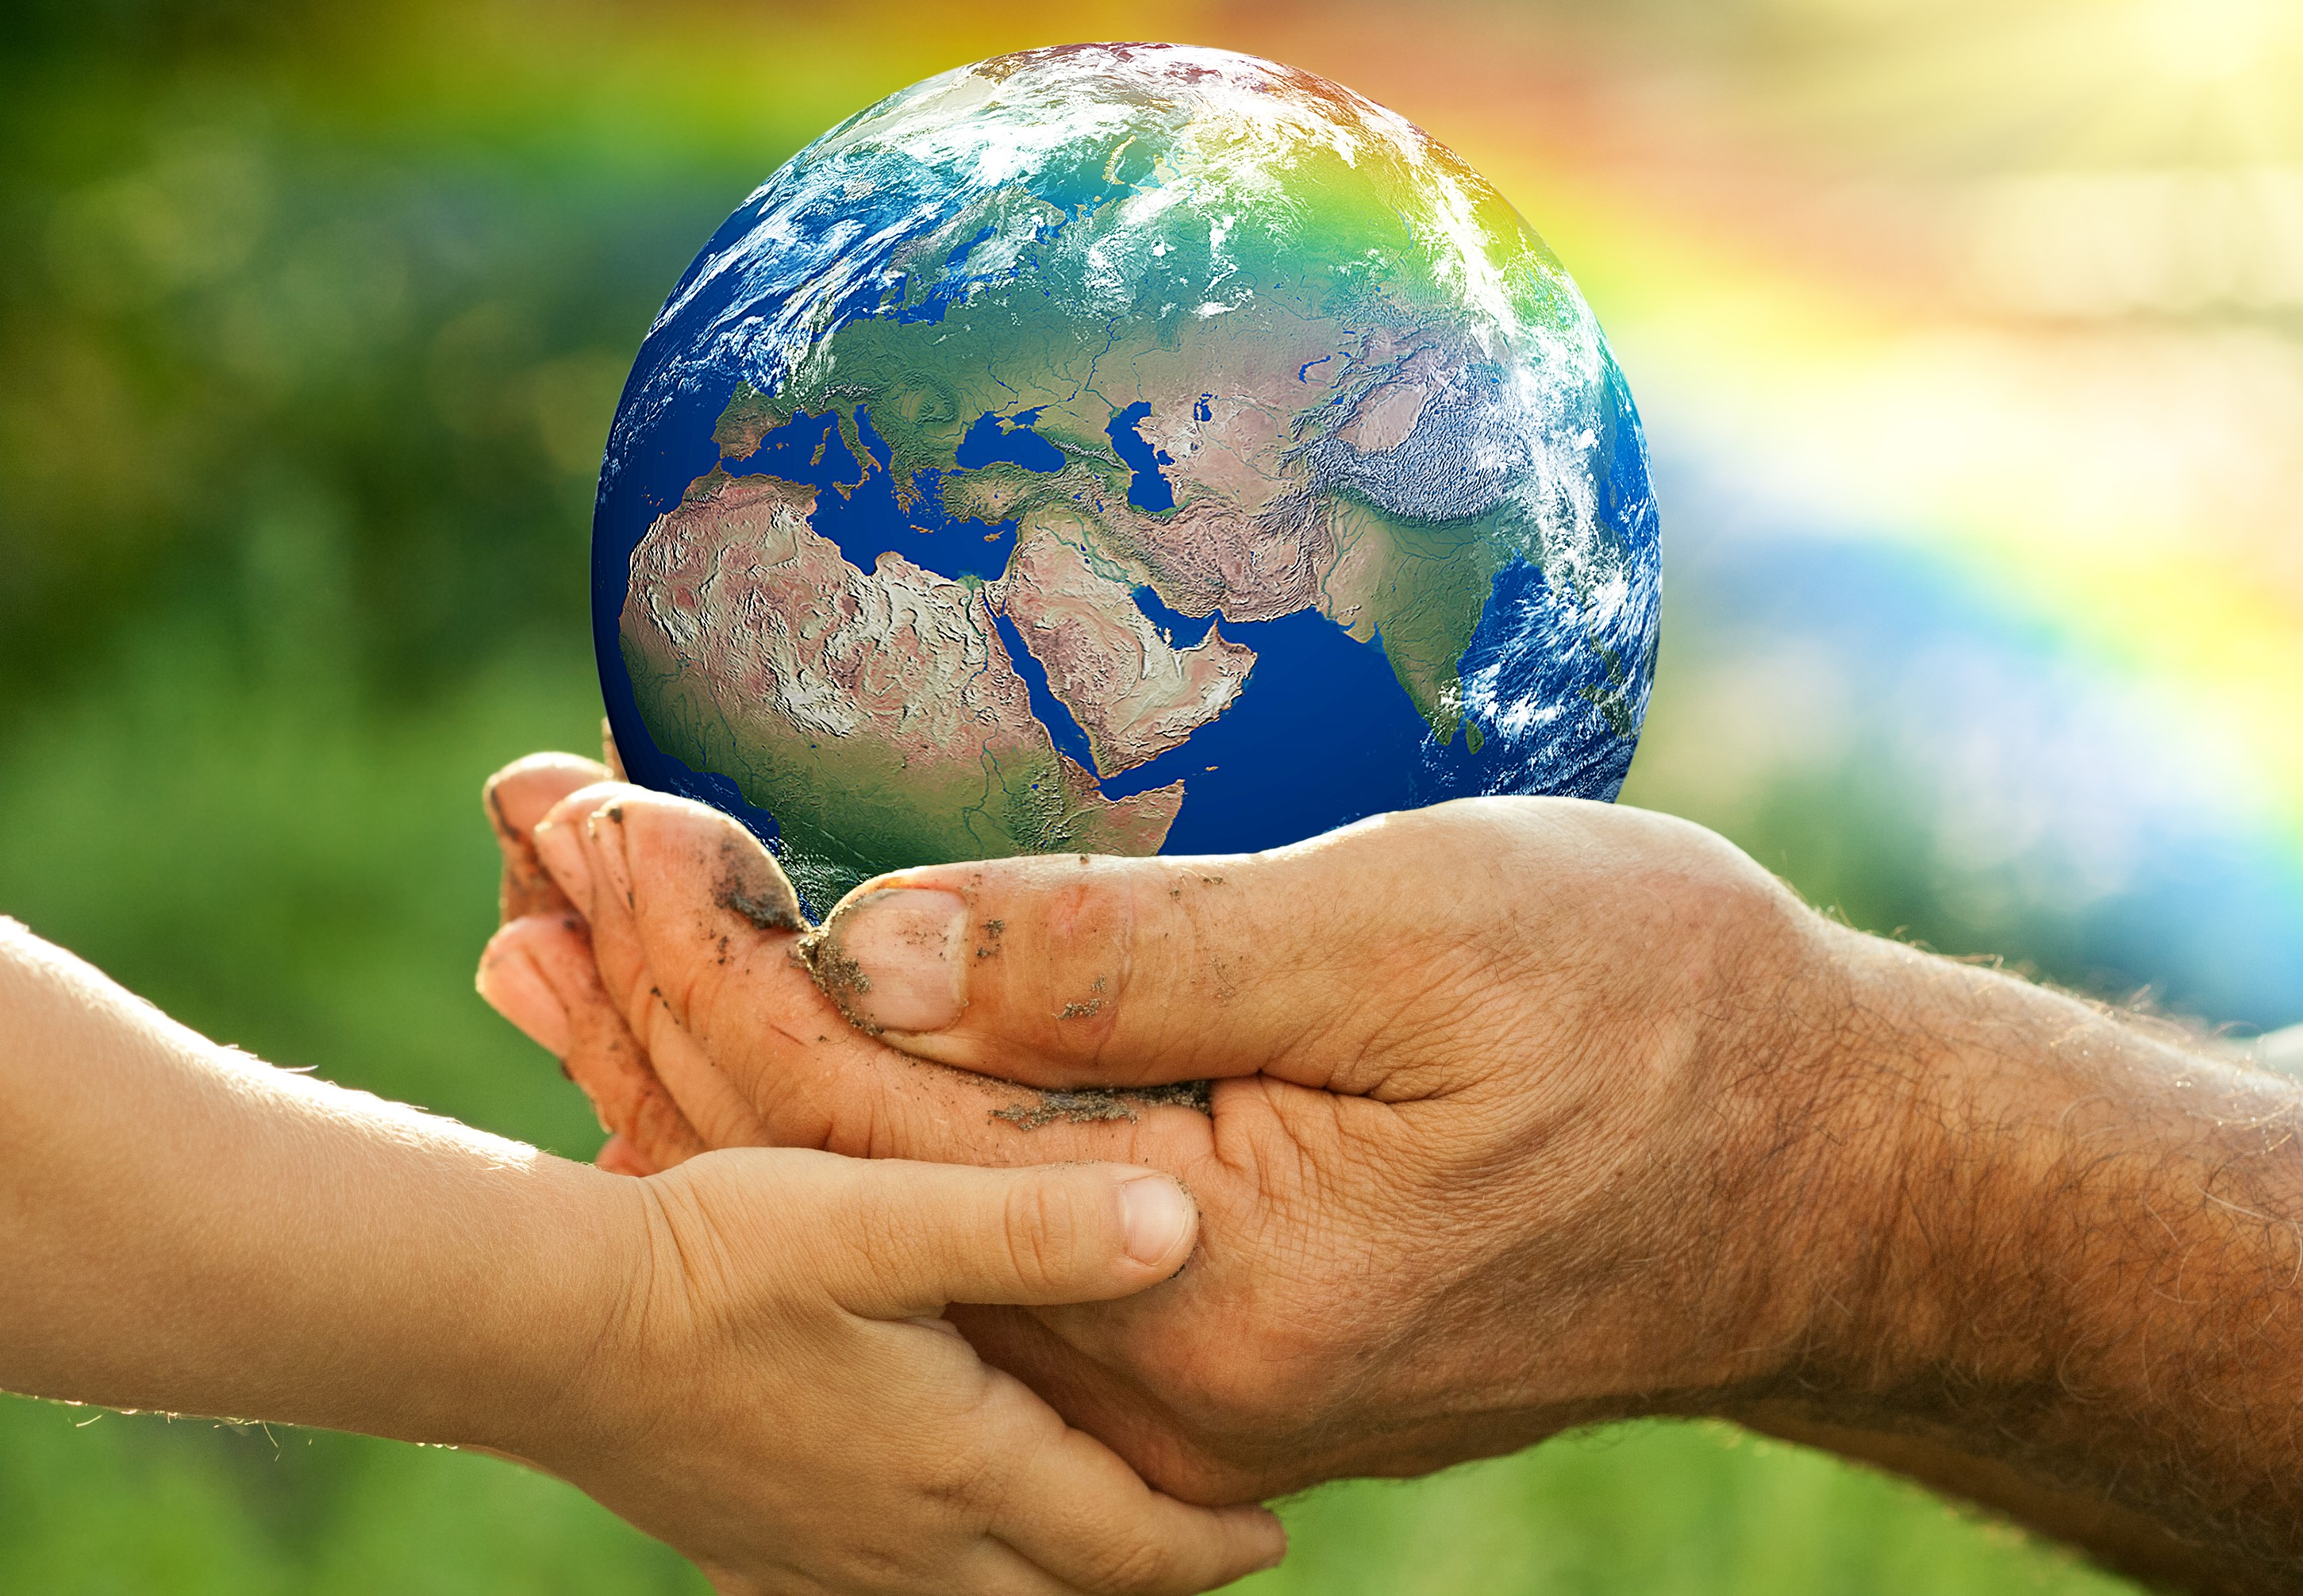 Globe held in hands of older person and child